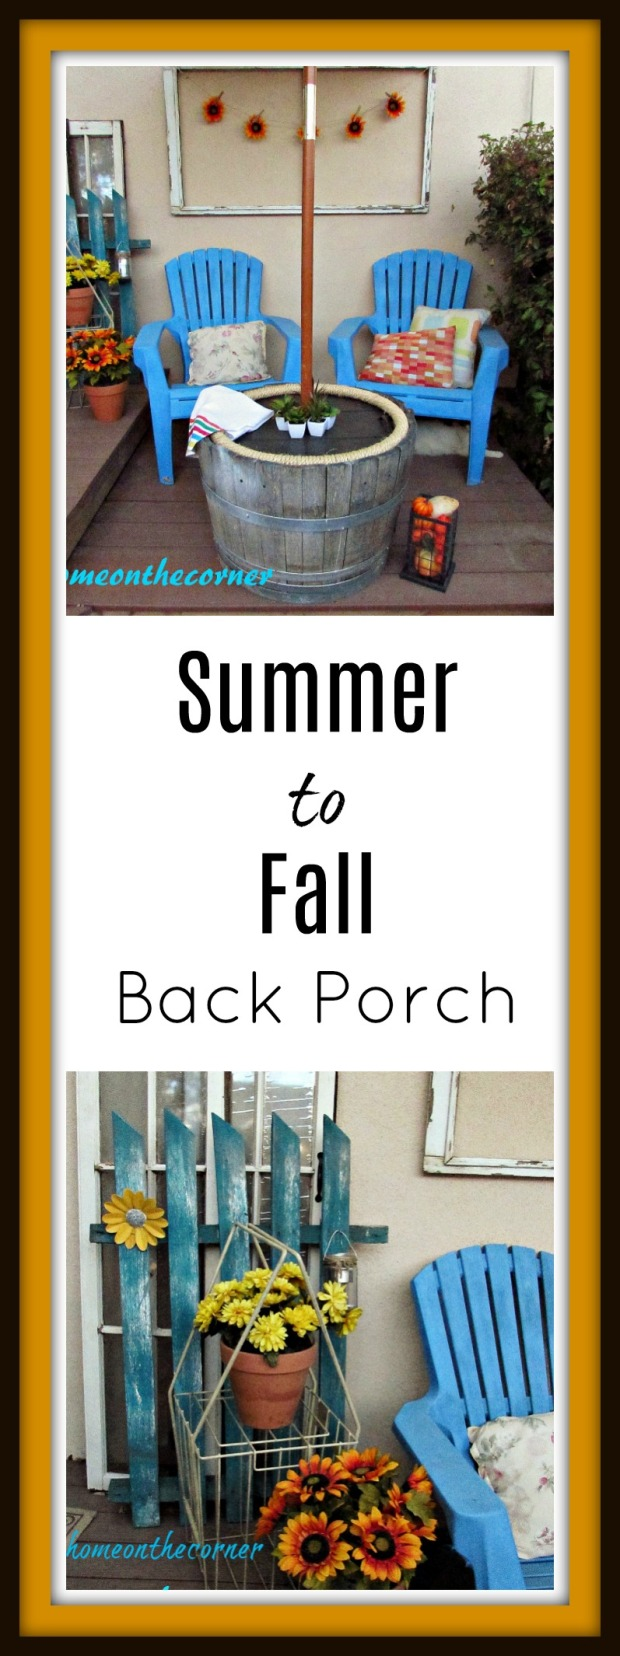 Summer to fall Back Porch Title